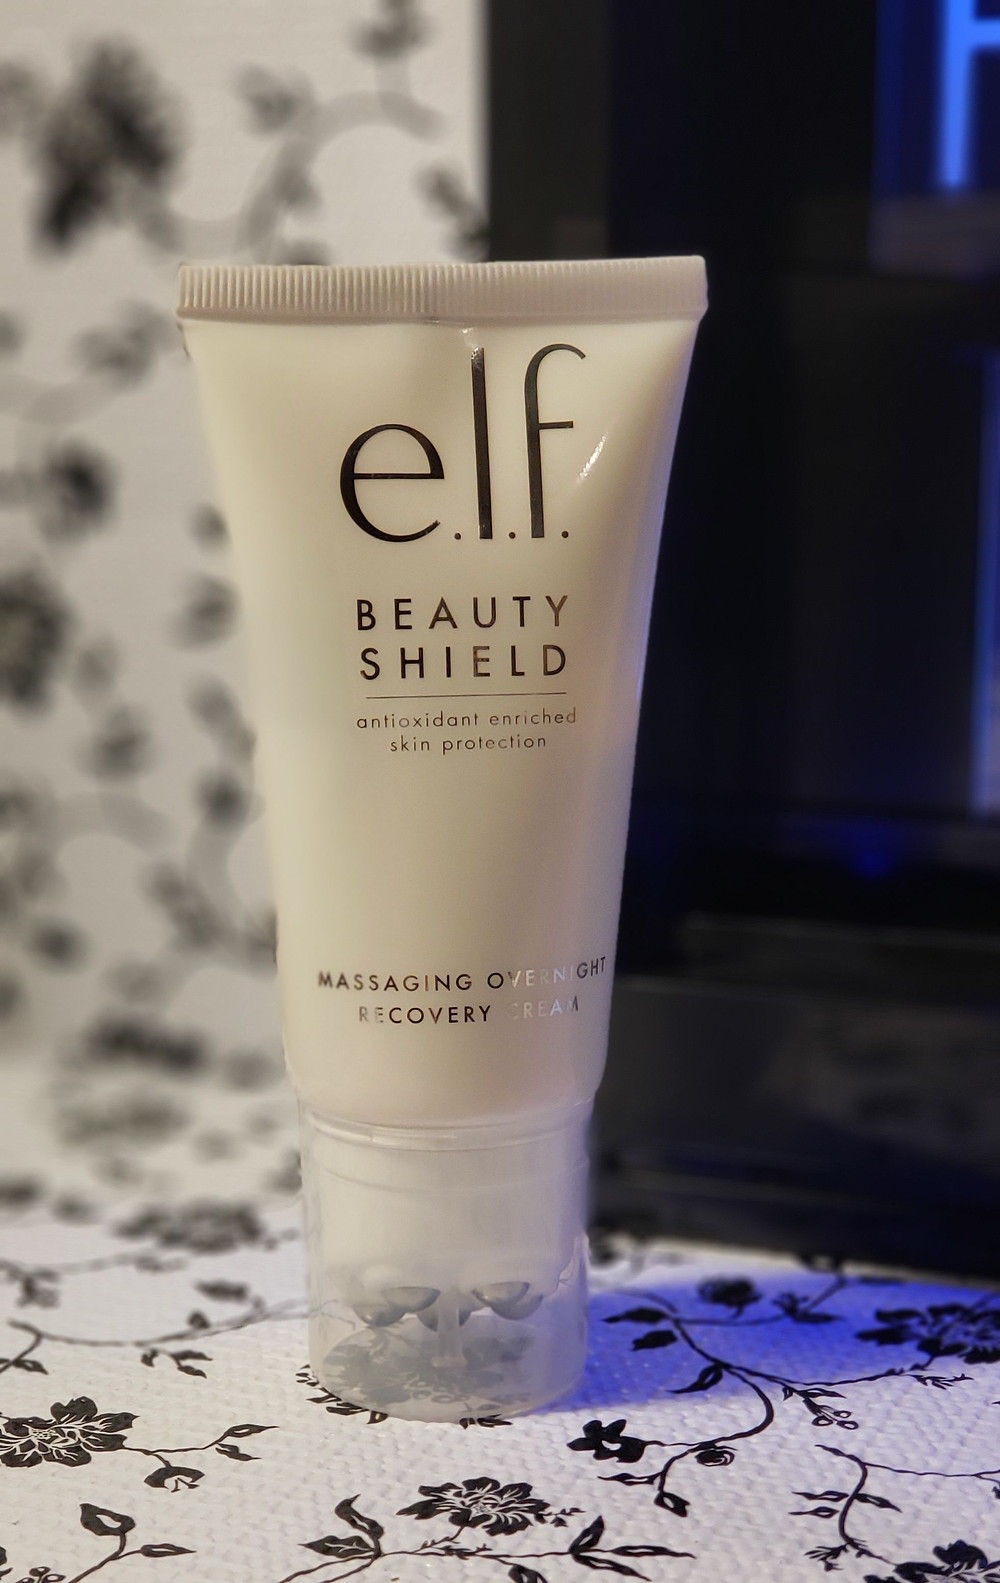 E.L.F Beauty Shield Massaging Overnight Recovery Cream